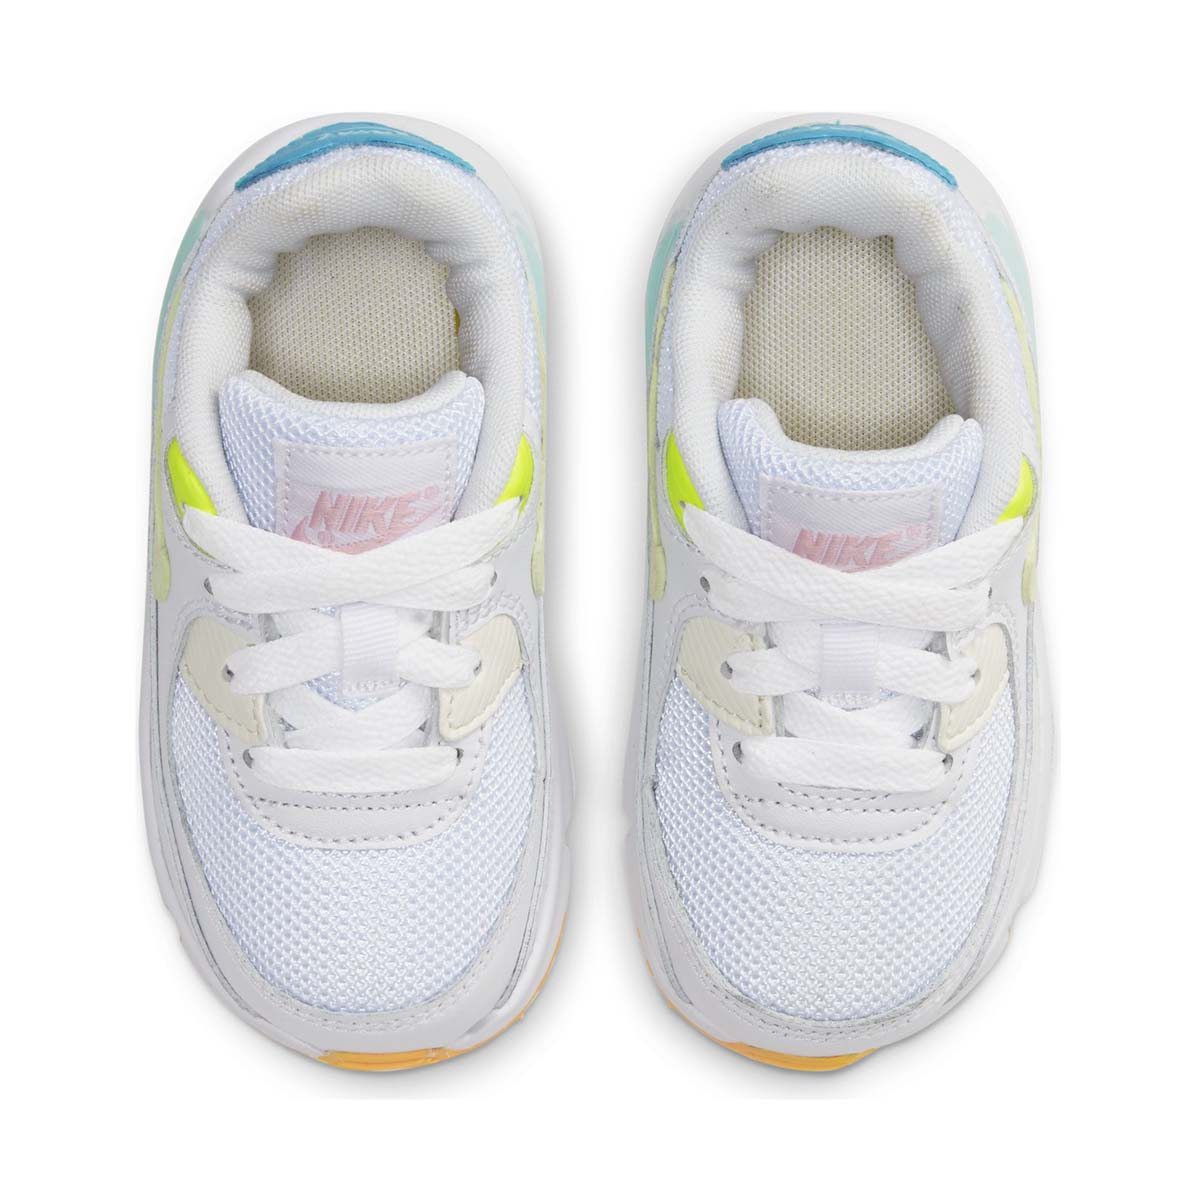 Toddler Nike Air Max 90